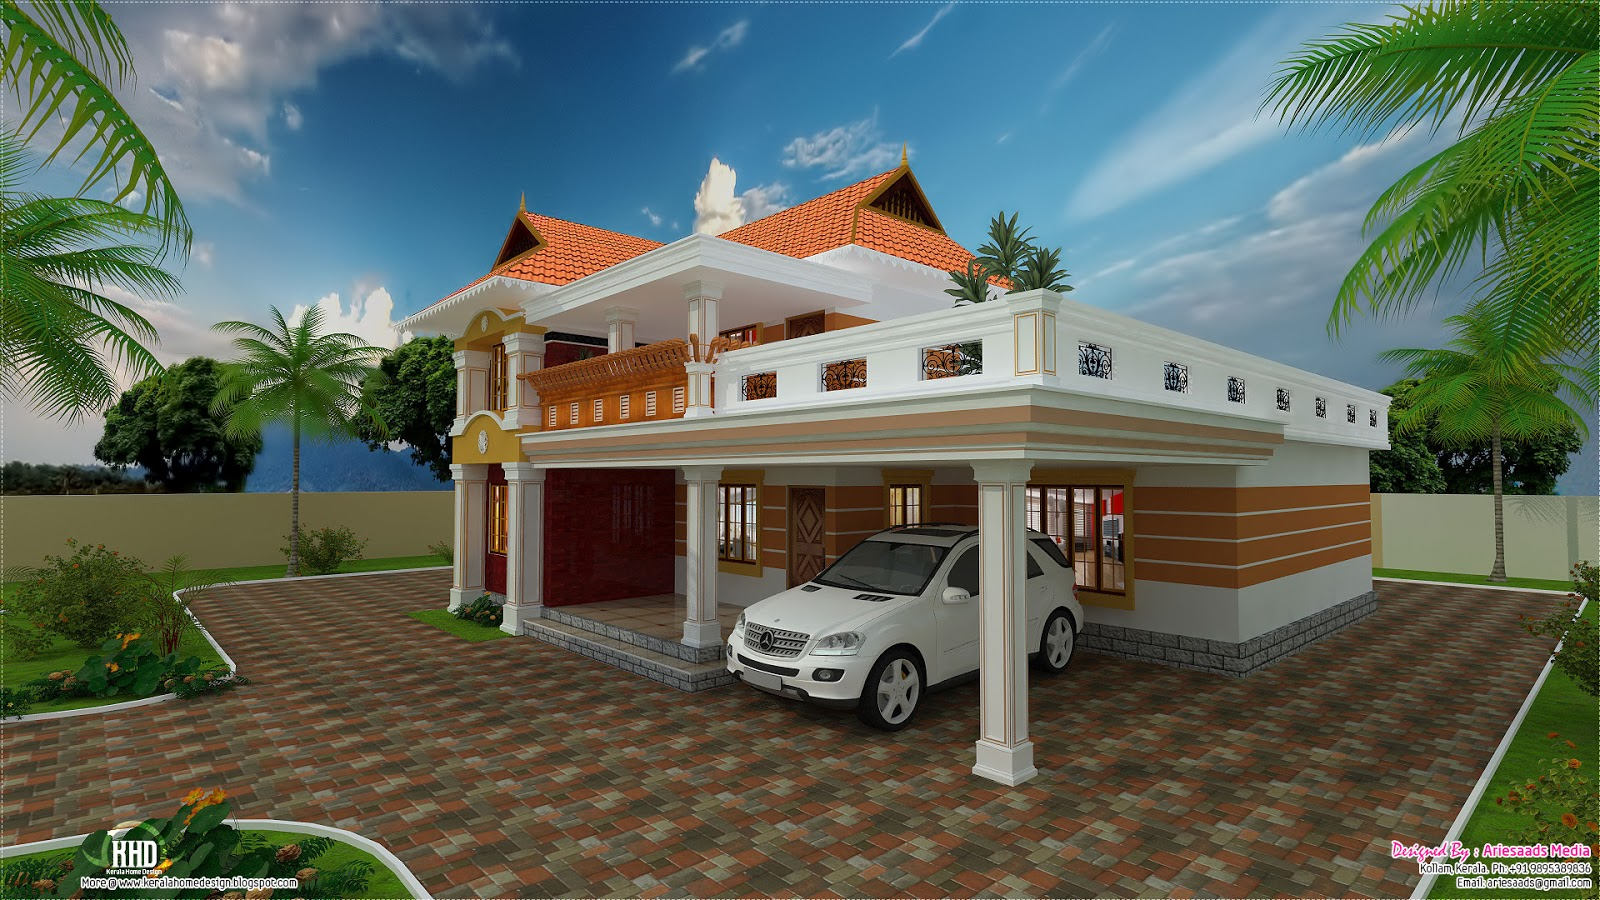 One Square Meter In Square Feet 2700 Sq Feet Beautiful Villa Design Kerala Home Design